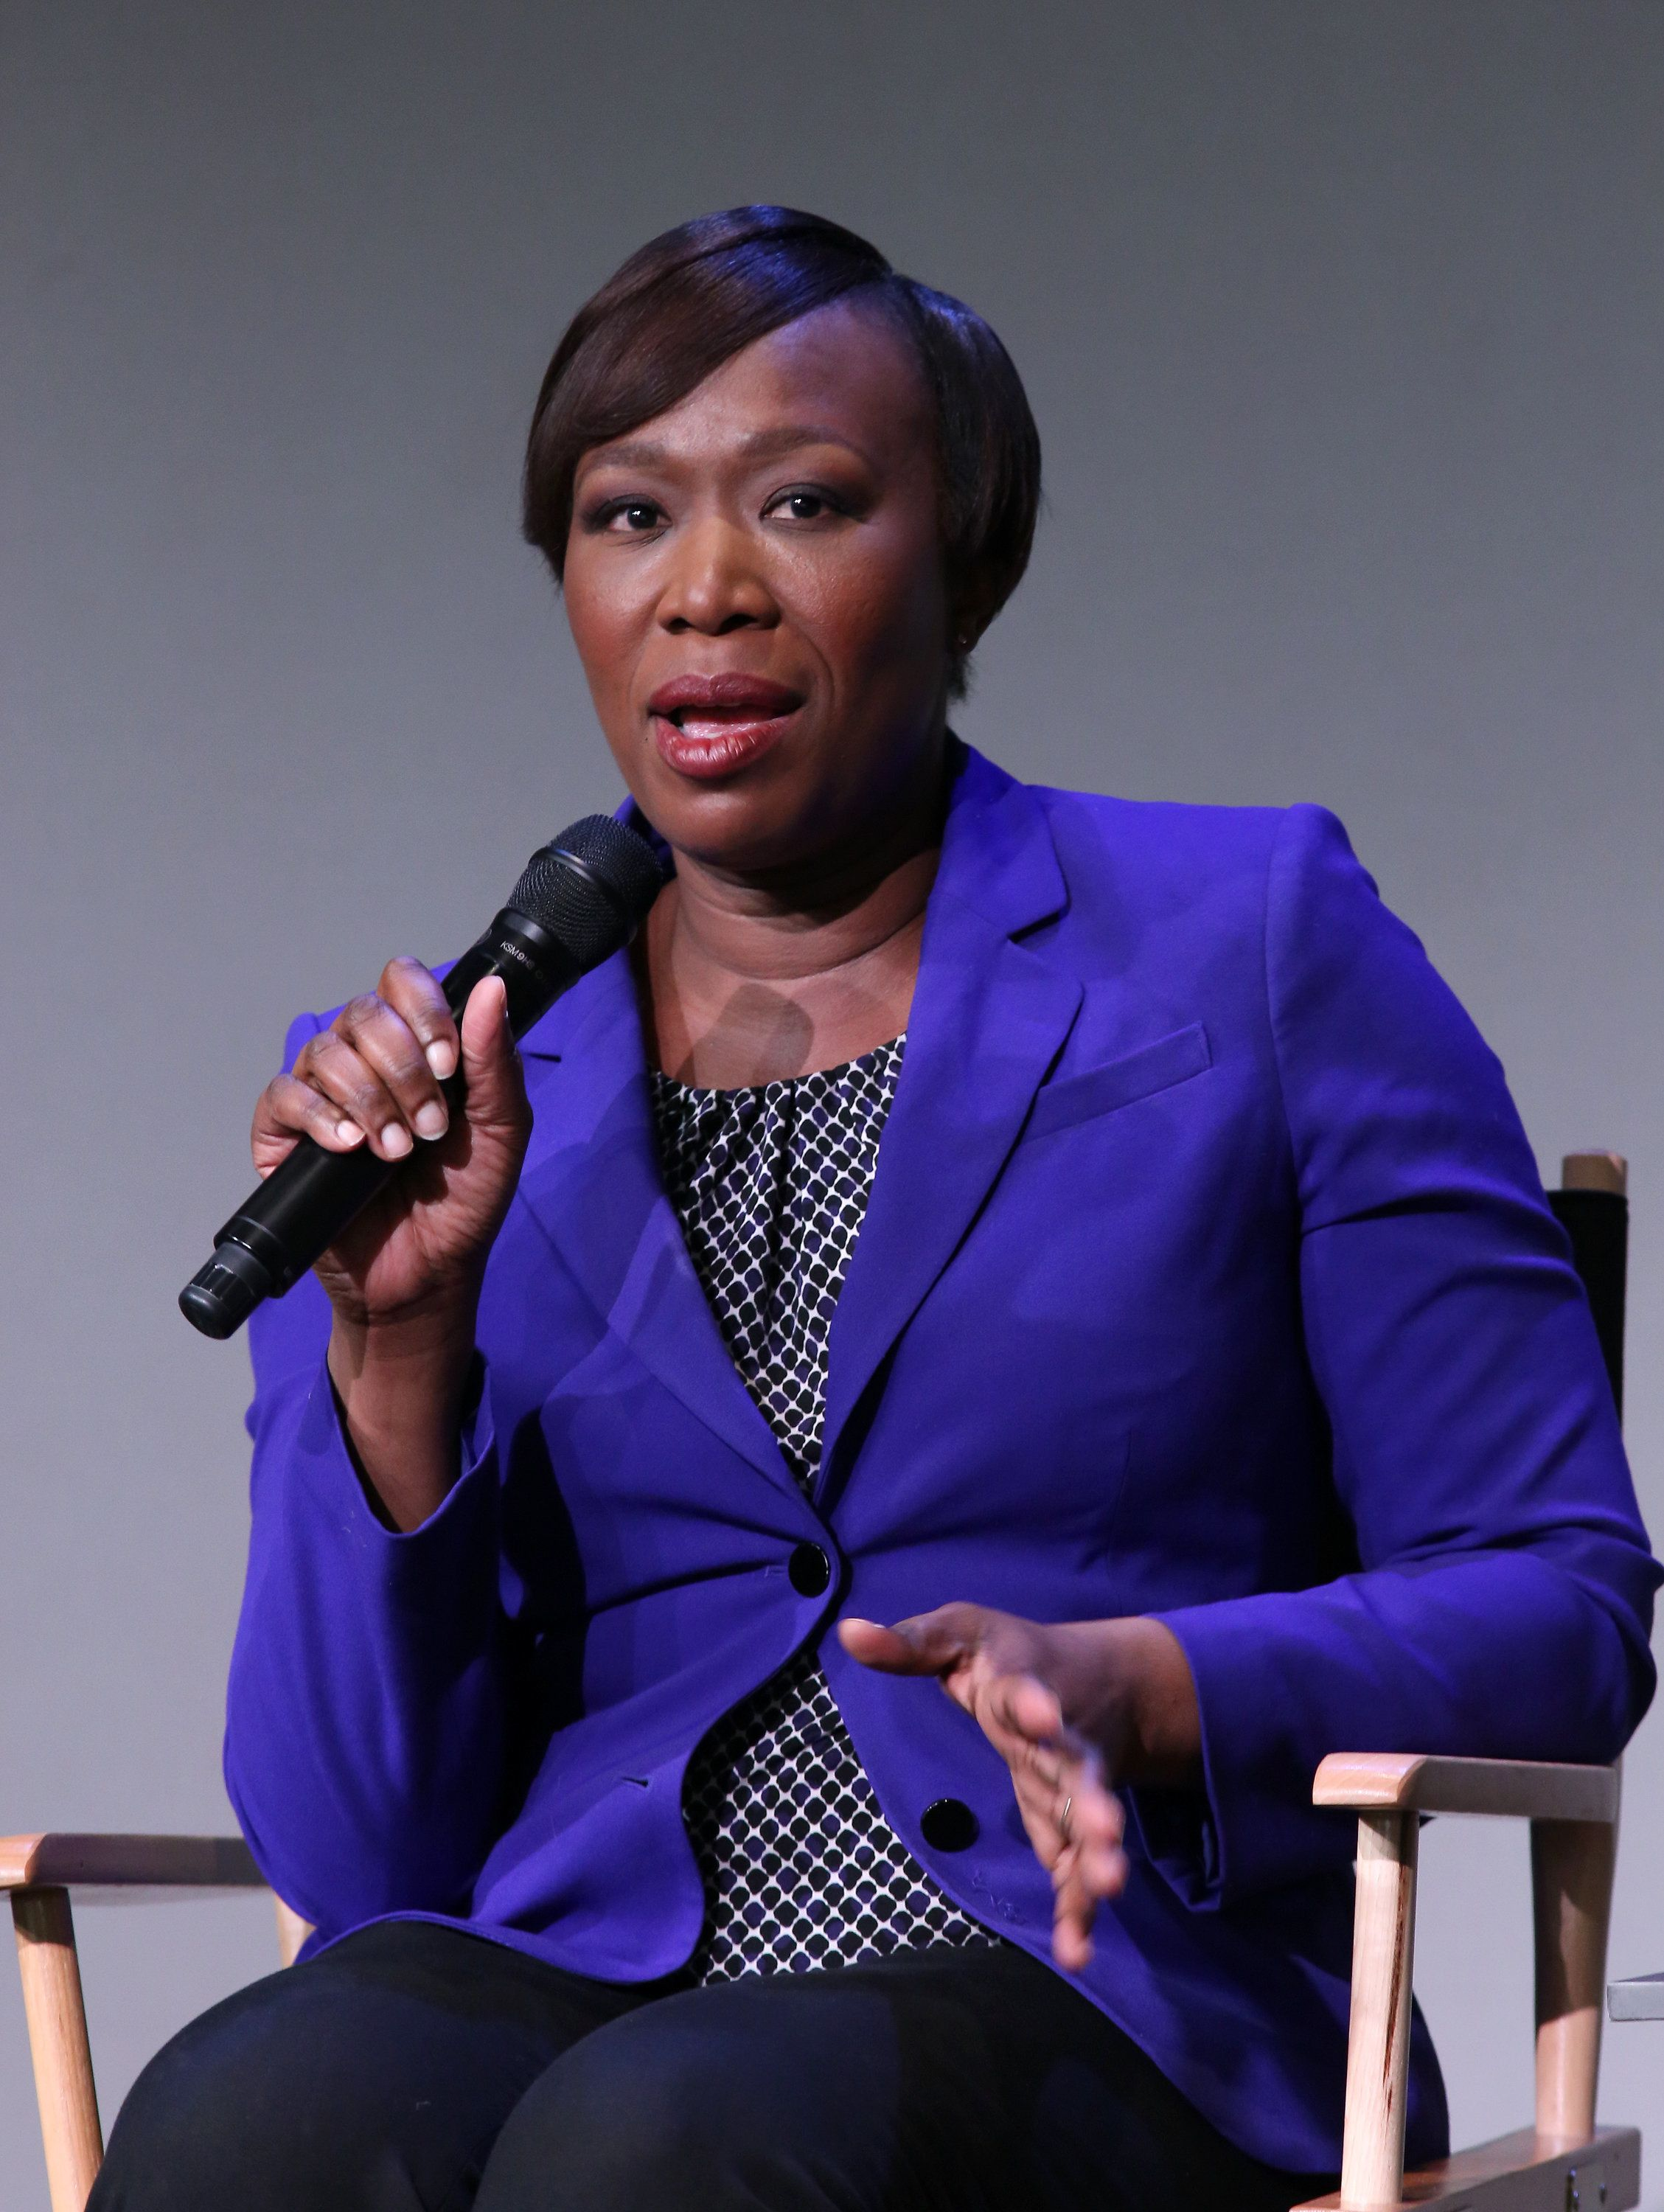 NEW YORK, NY - FEBRUARY 09:  TV personality Joy Reid attends The Apple Store Soho Presents Meet The Creator at Apple Store Soho on February 9, 2015 in New York City.  (Photo by Bennett Raglin/WireImage)